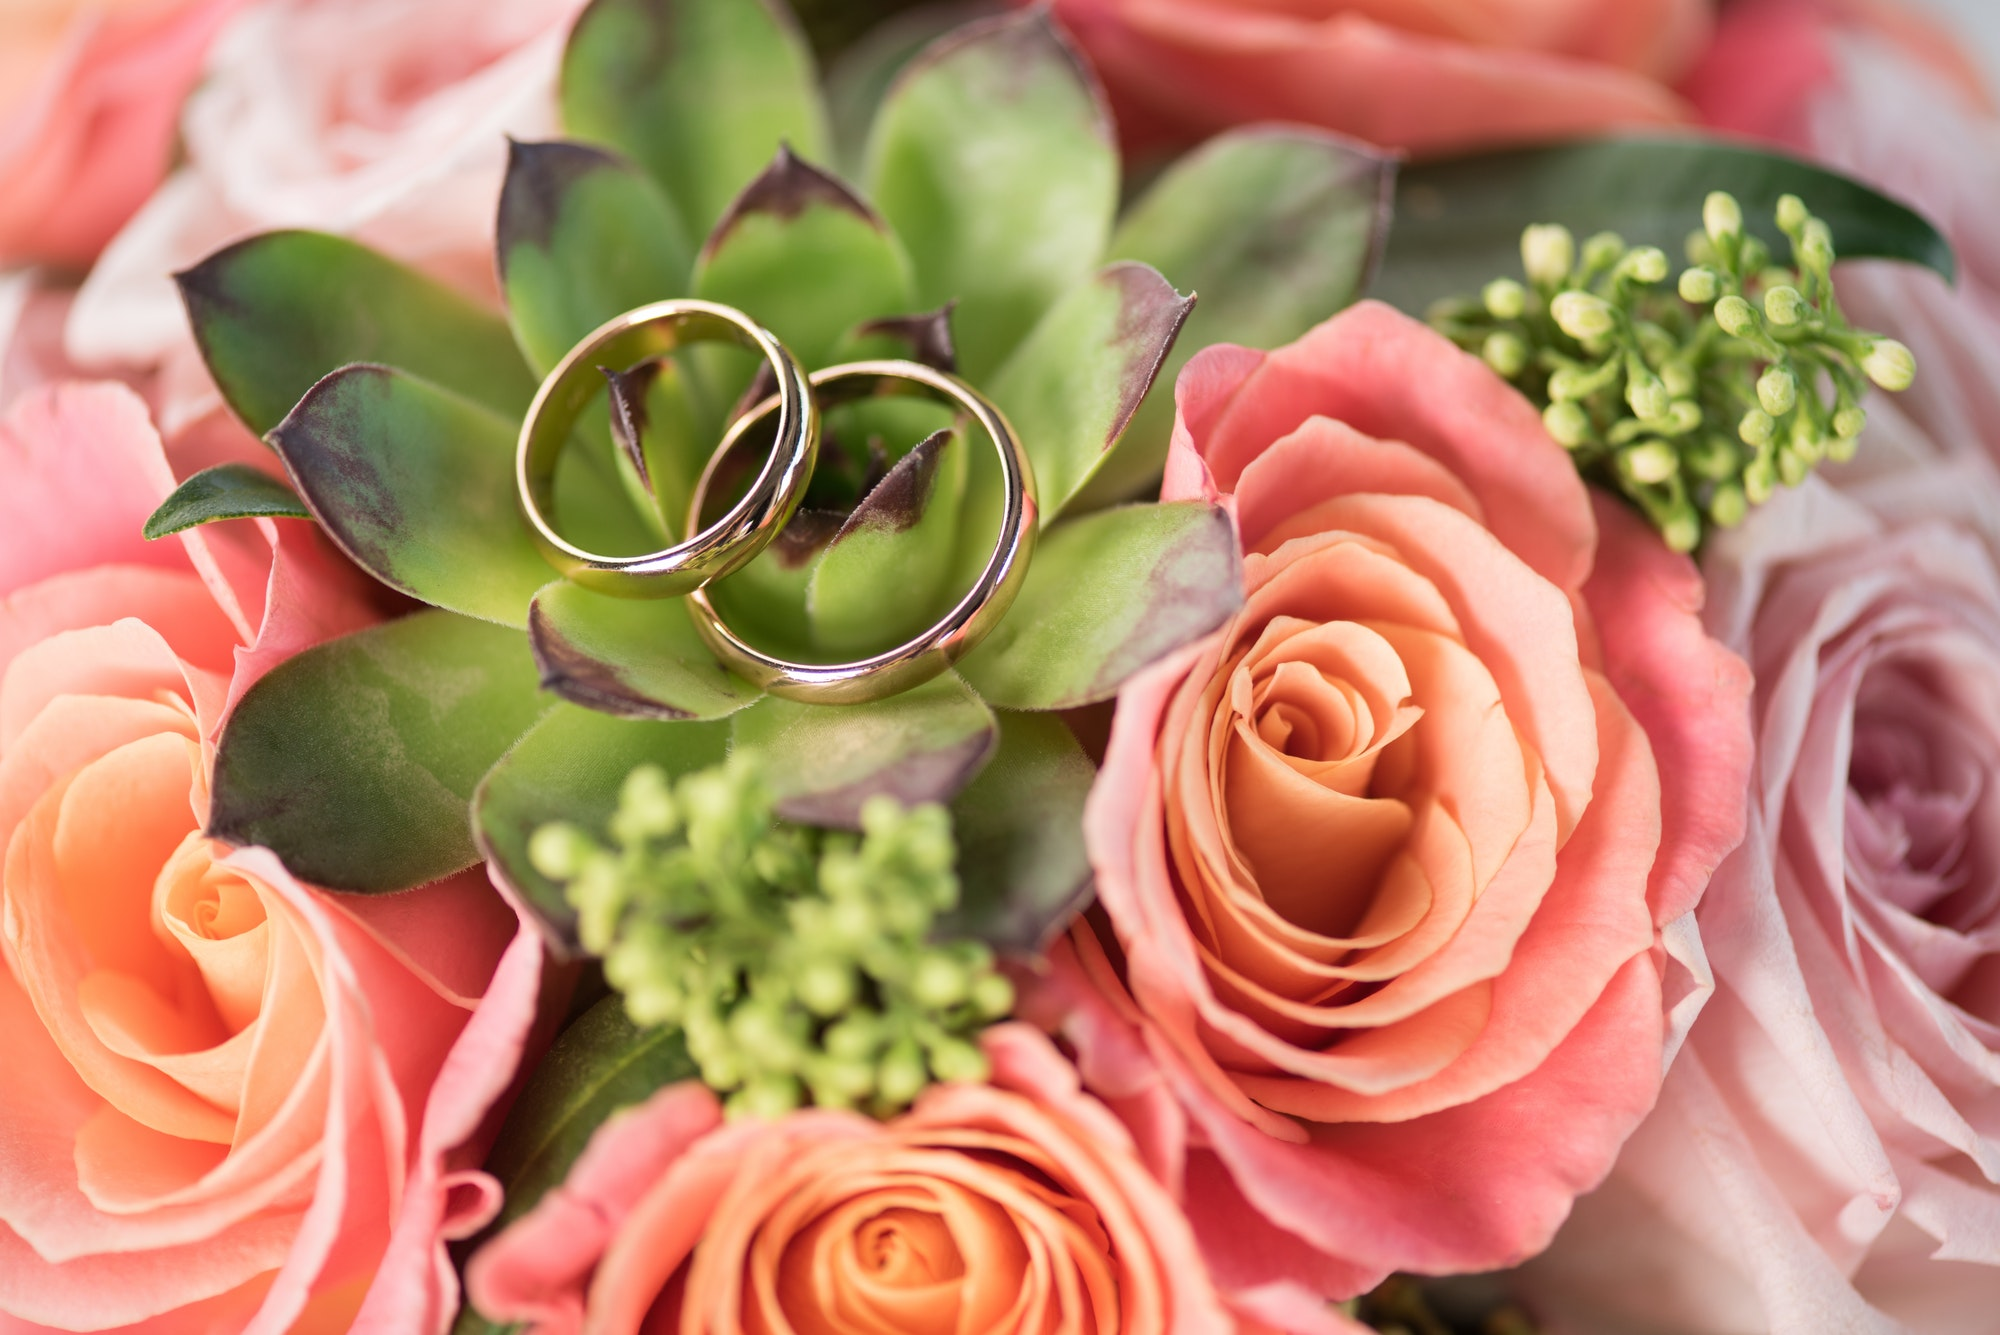 two golden wedding rings on bouquet on roses and succulent, wedding rings and flowers concept